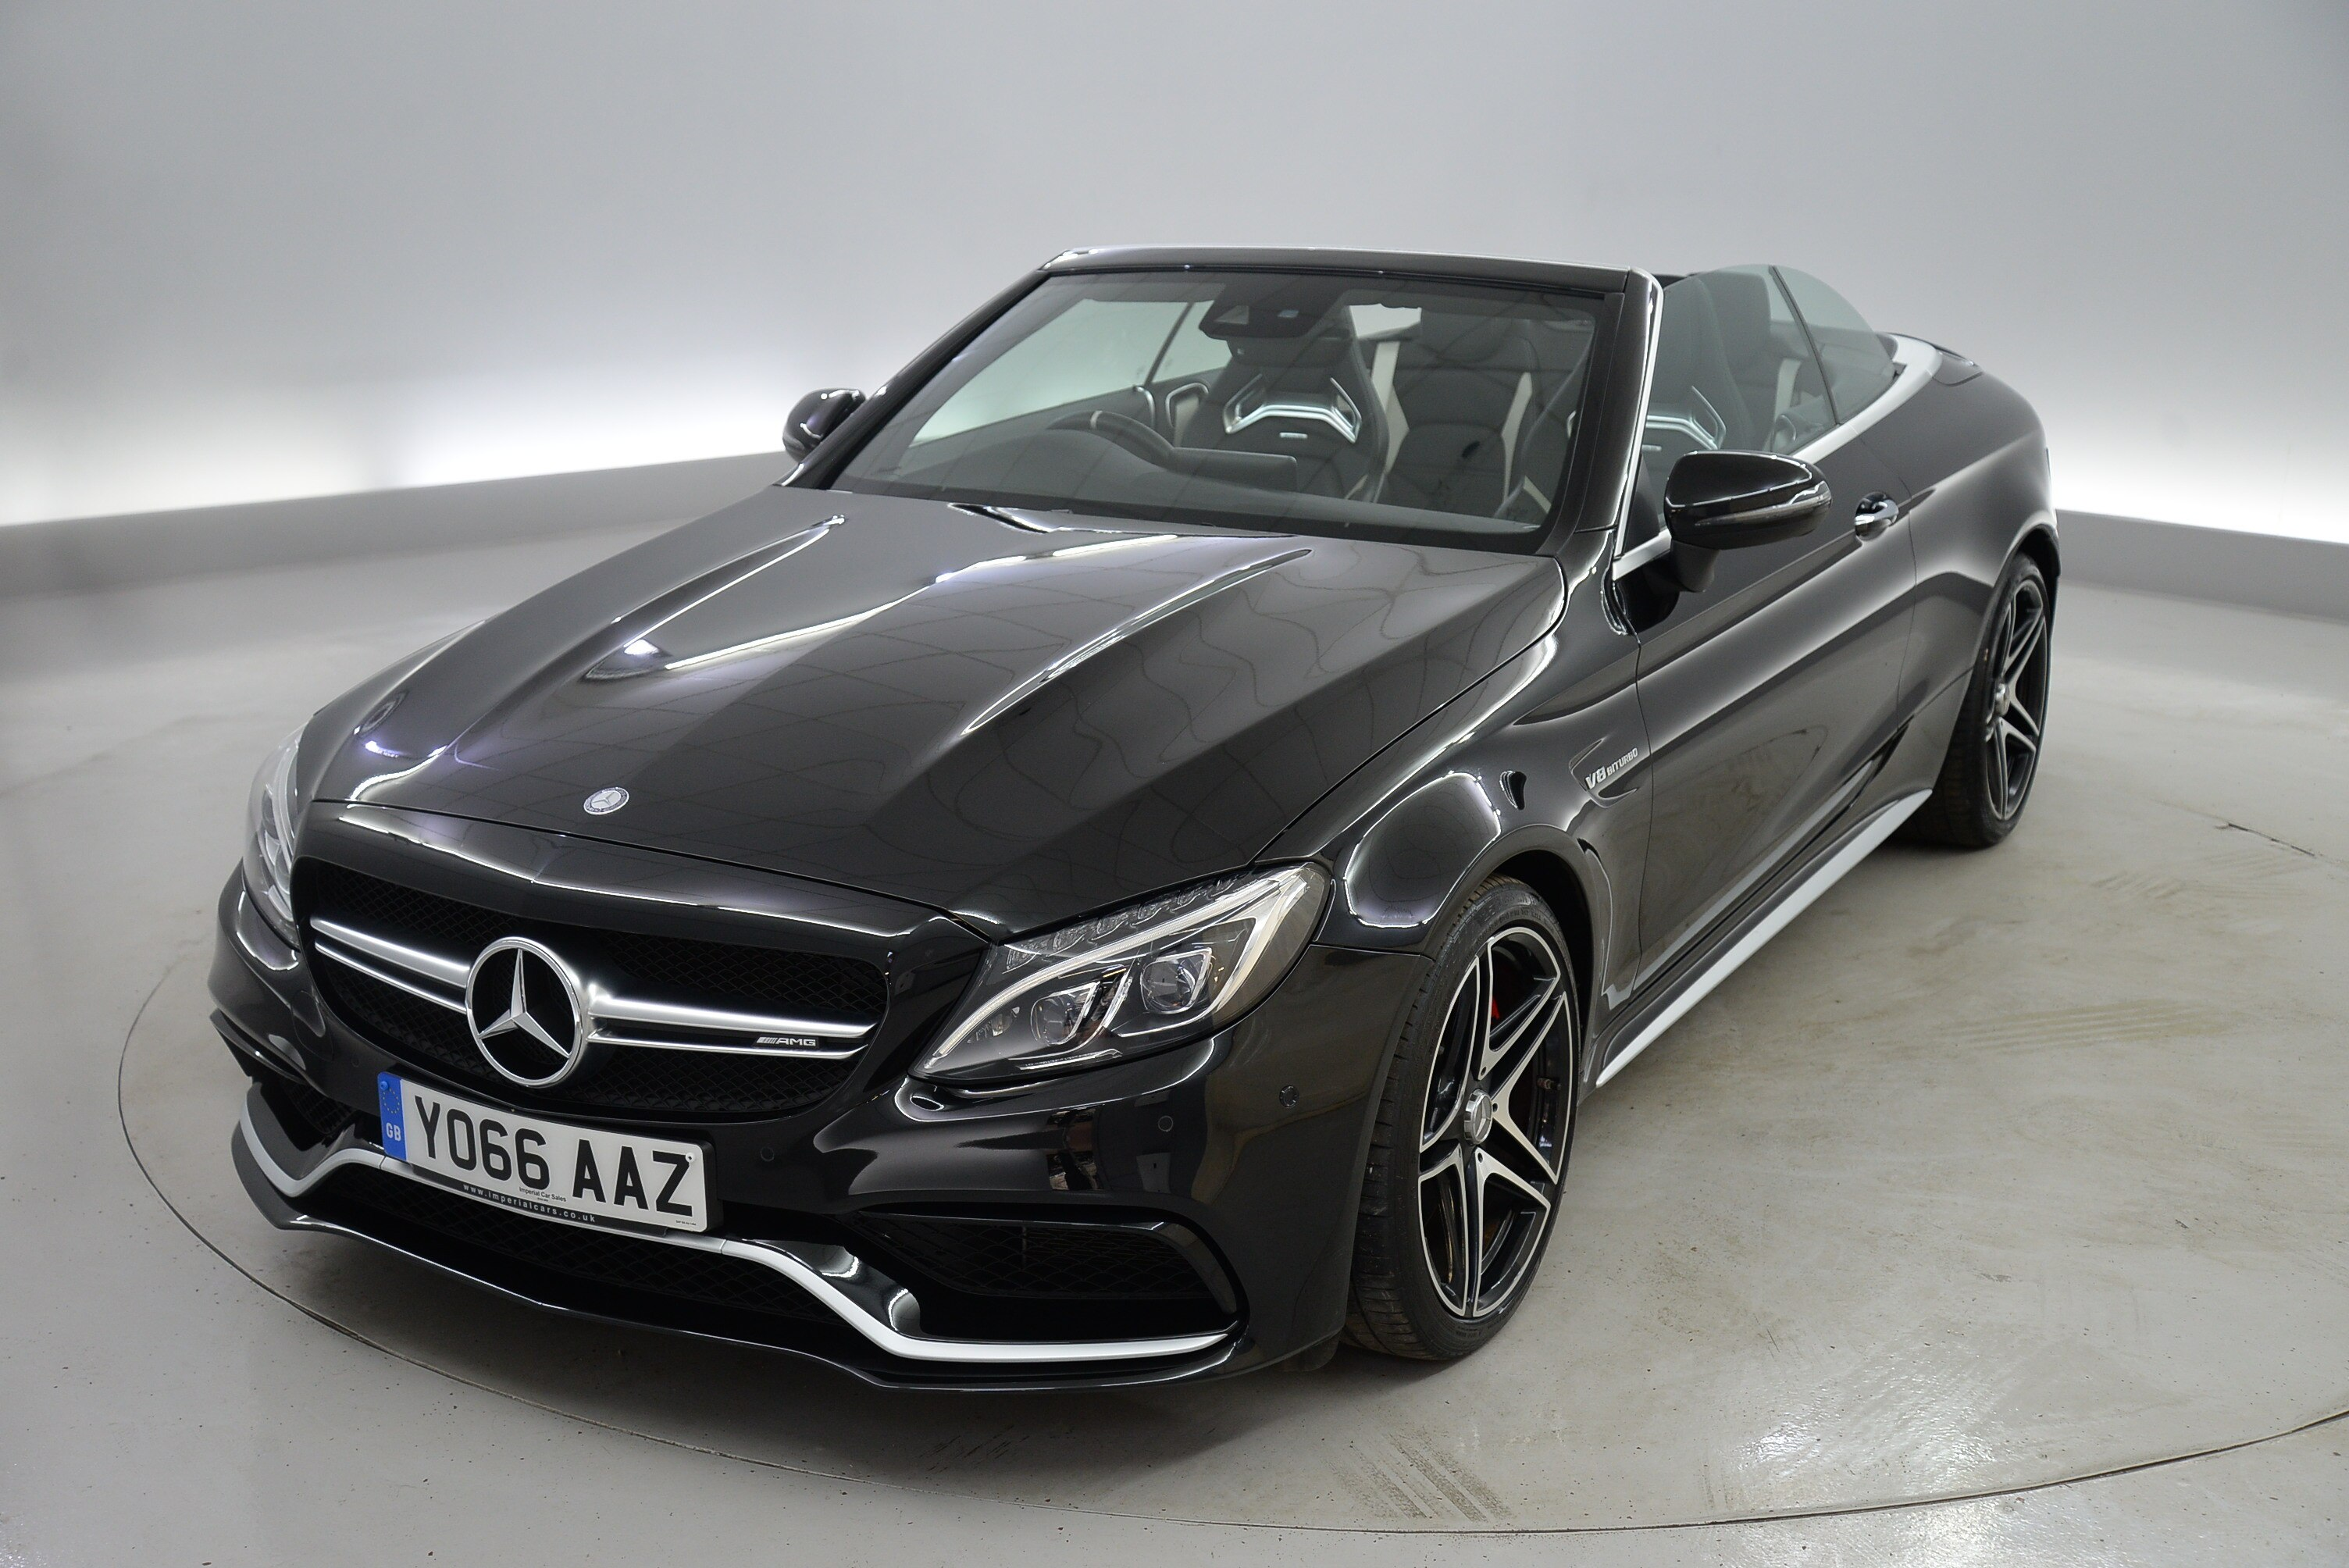 tour car world the img benz spotter part front gtr mercedes around spotters s clk view of